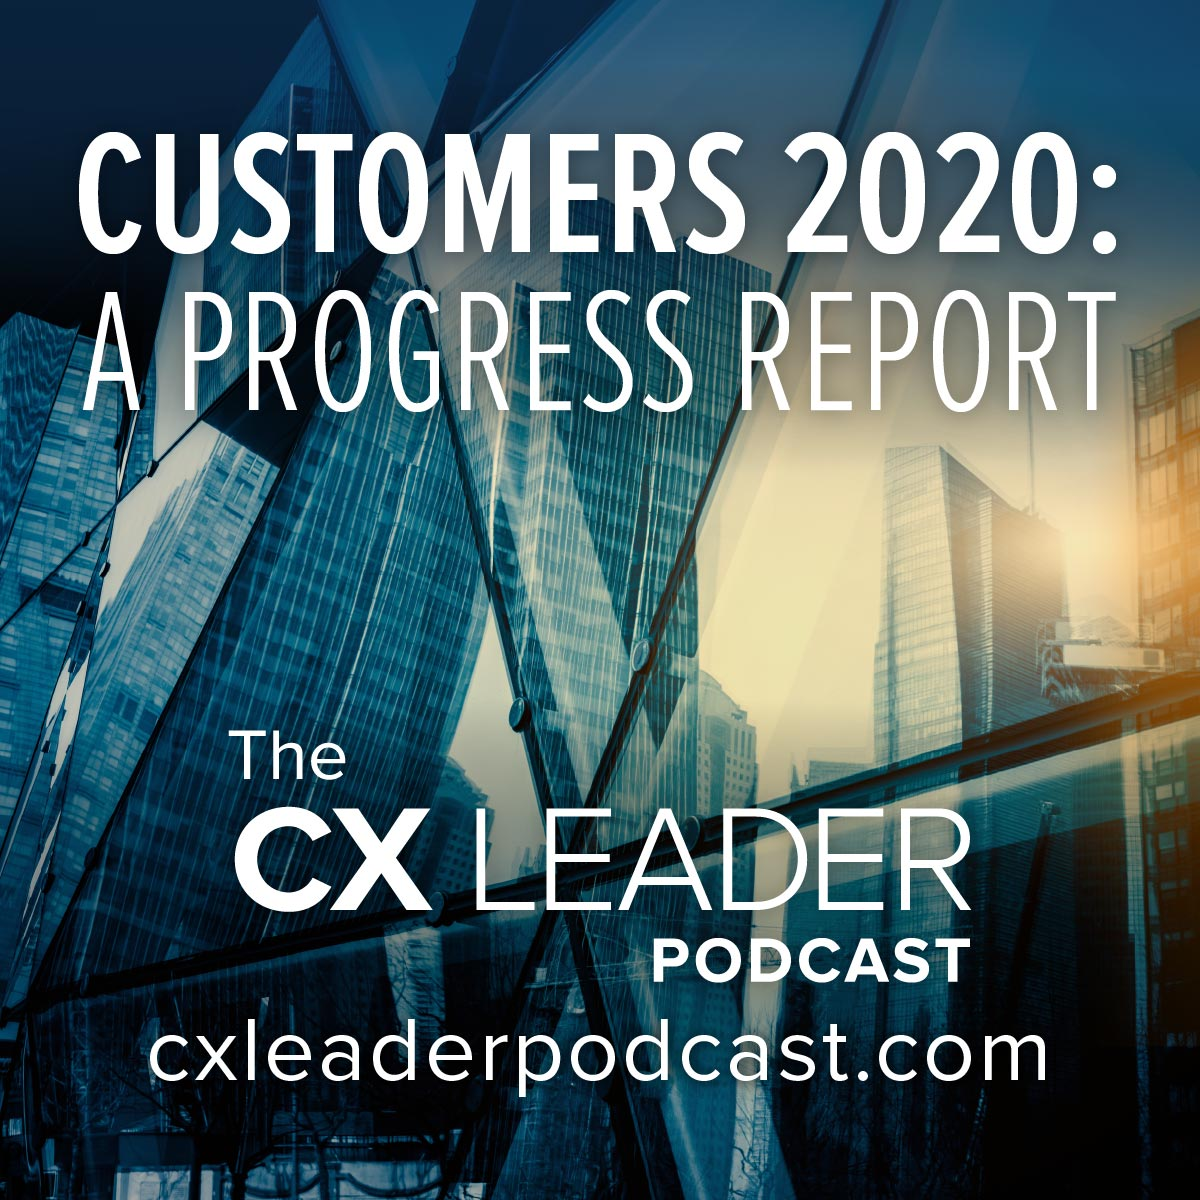 Customers 2020: A Progress Report